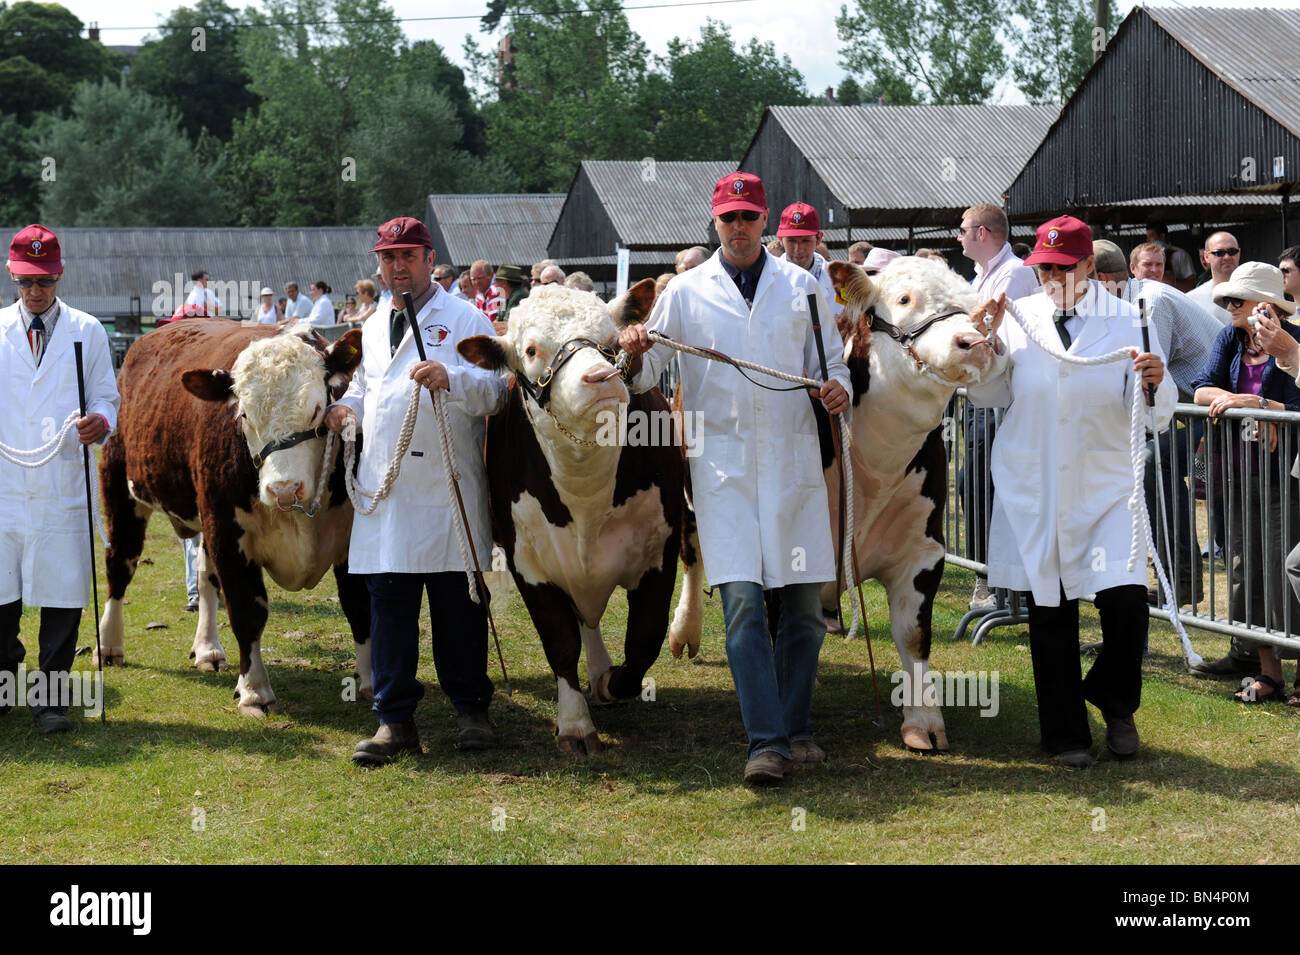 Hereford cattle Shropshire County Show - Stock Image